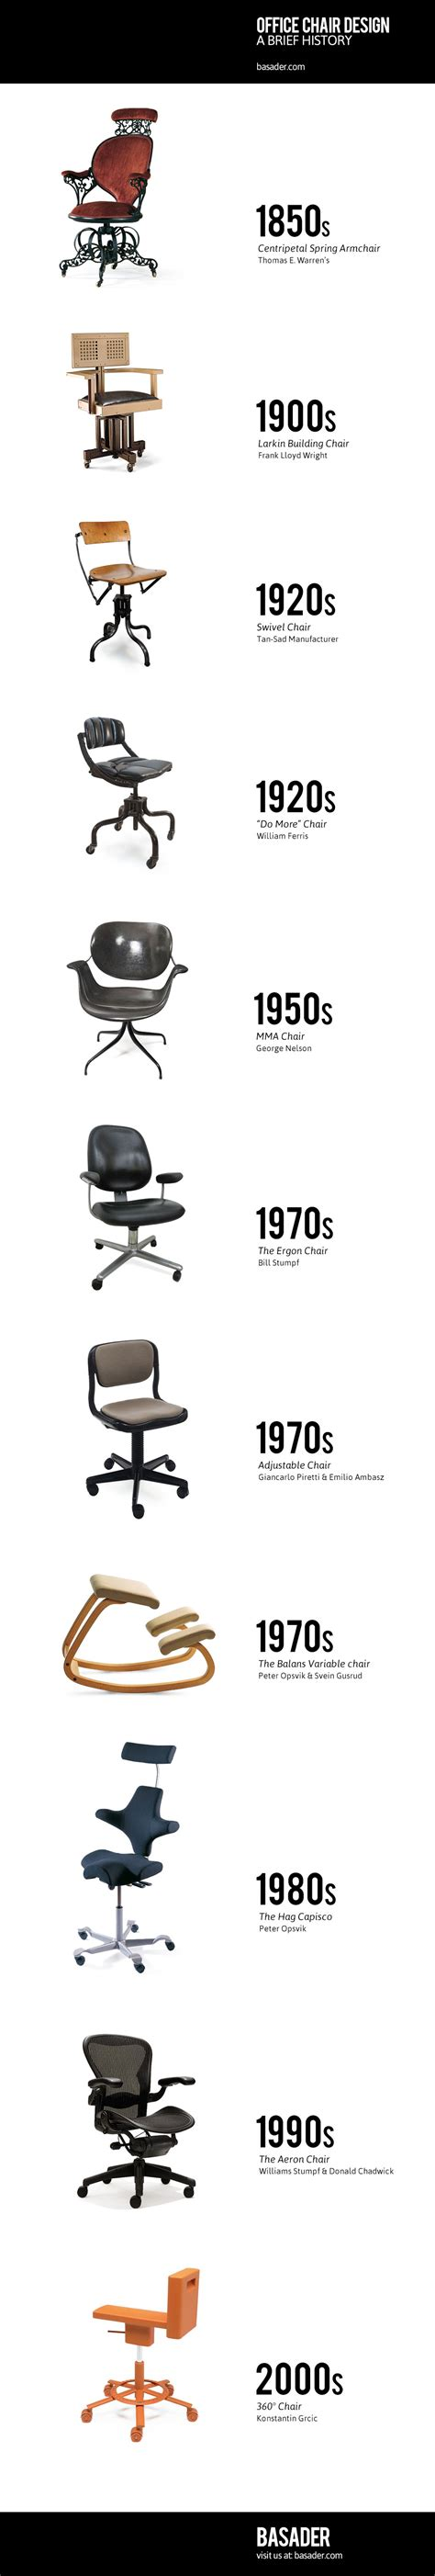 design brief chair office chair design history of office chair design